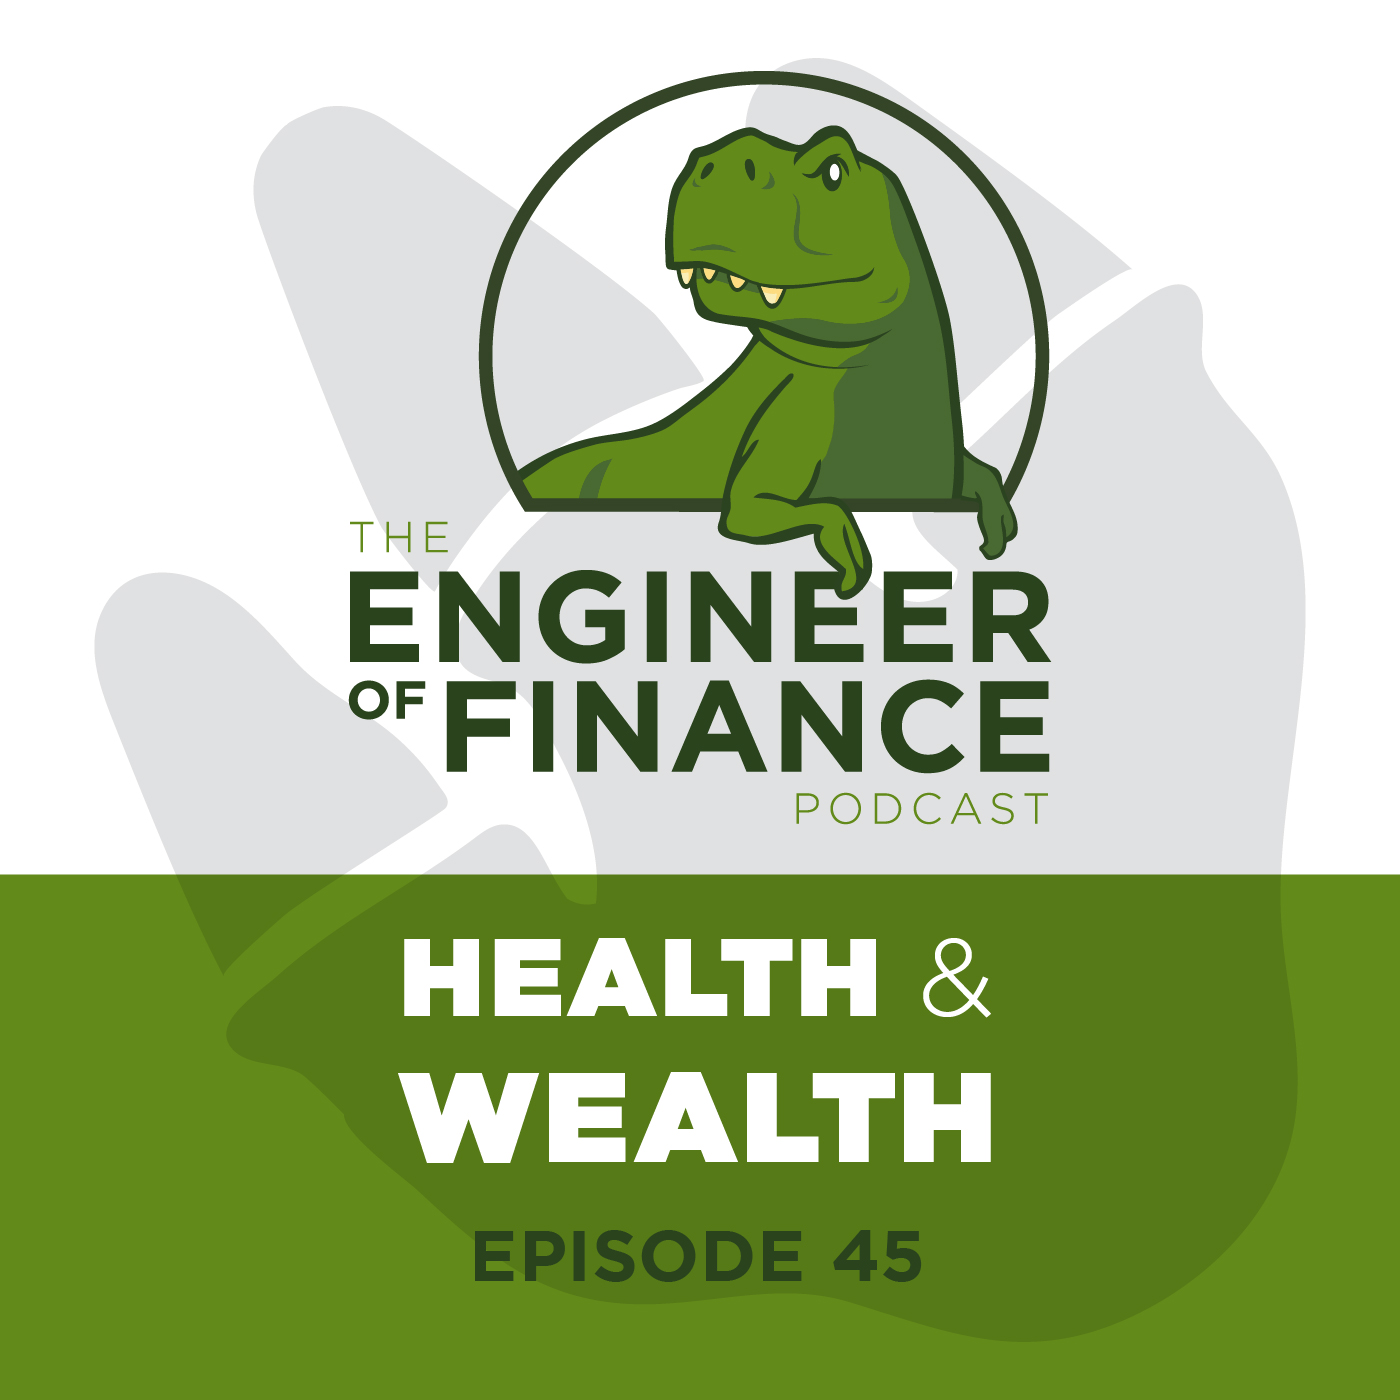 Ken Greene Podcast Episode 45 – Health & Wealth